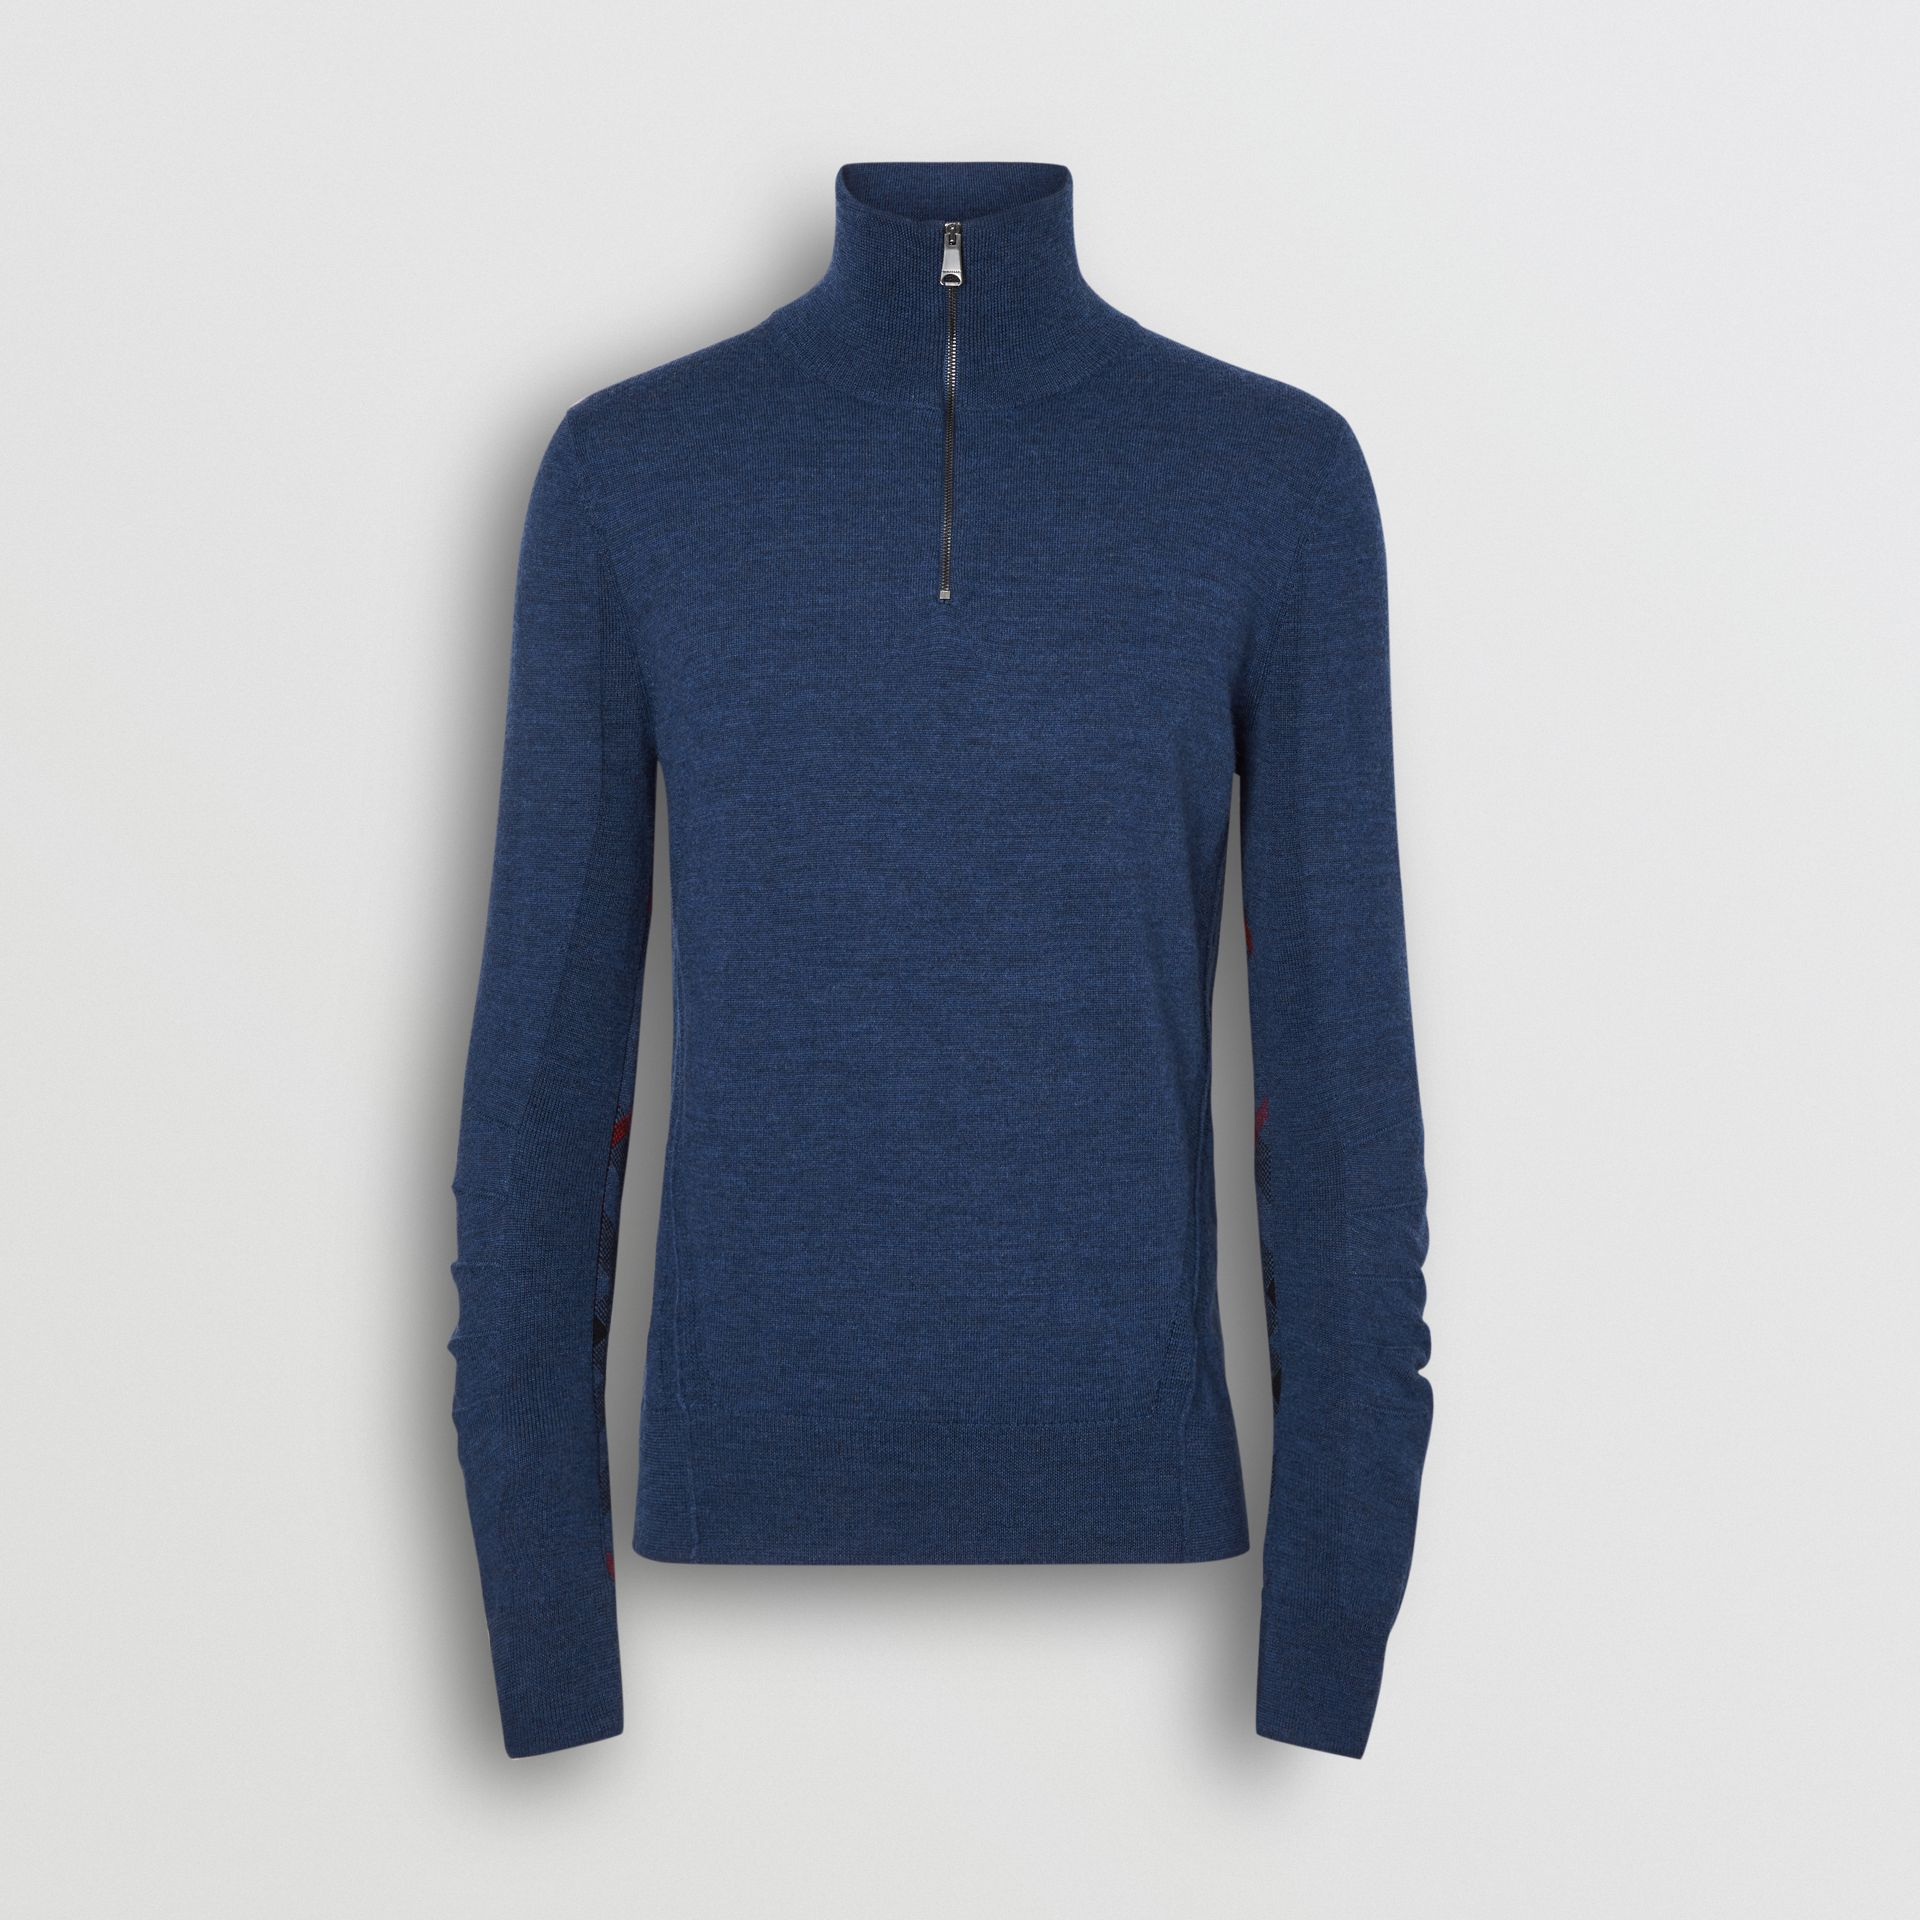 Merino Wool Half-zip Sweater in Storm Blue - Men | Burberry - gallery image 3